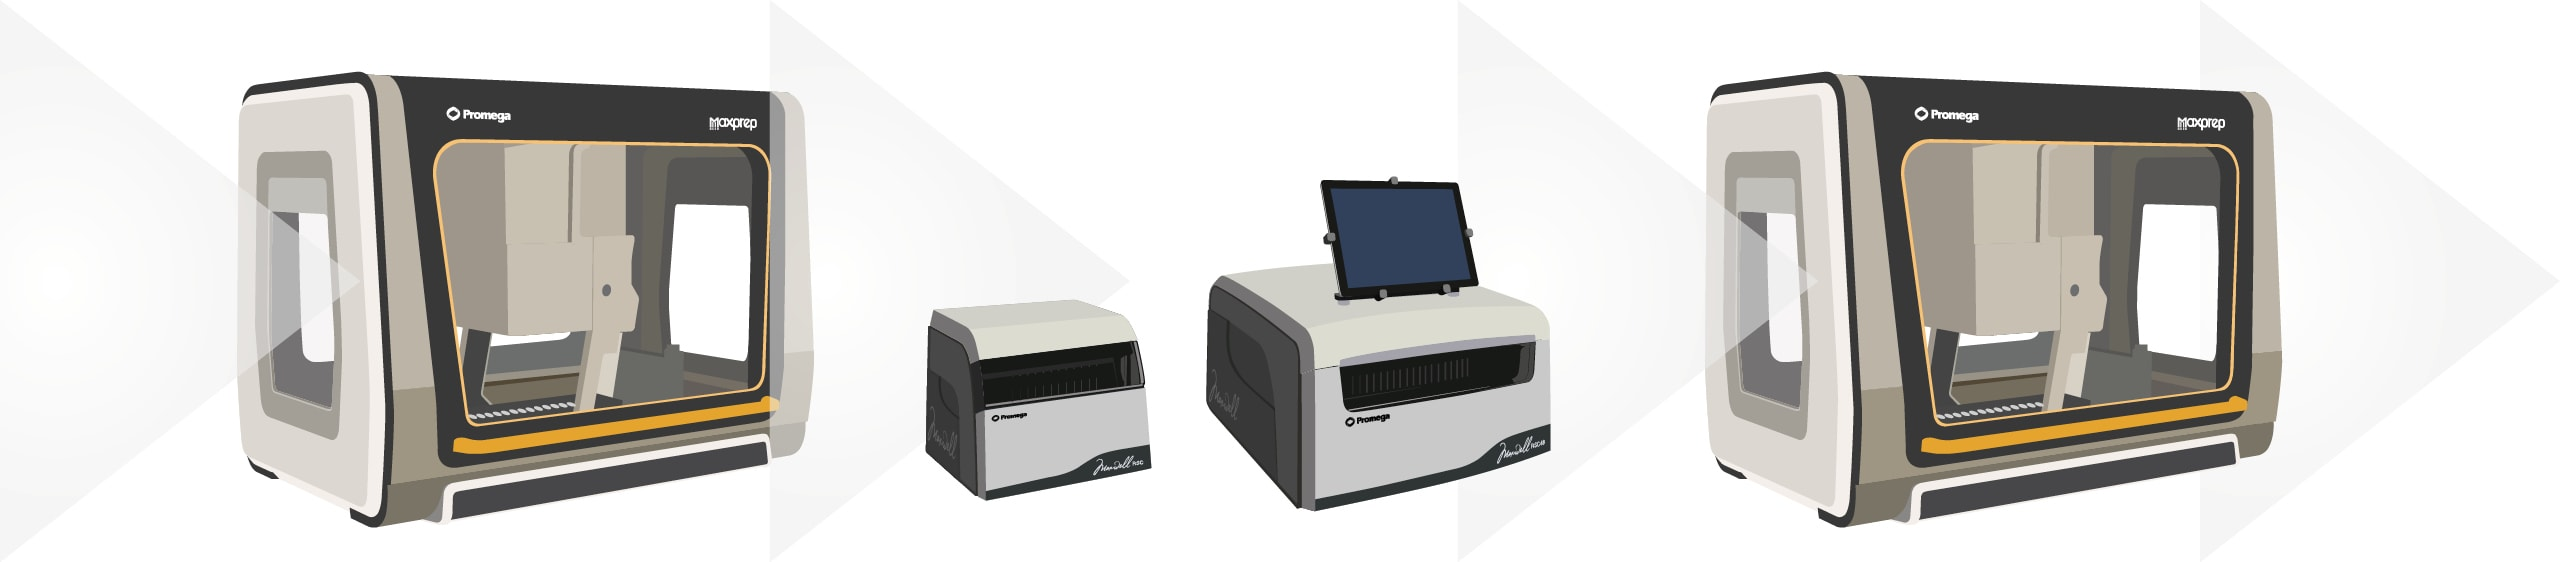 Maxprep and maxwell instruments provide a complete workflow solution for pre-processing,  automated DNA extraction and post-processing